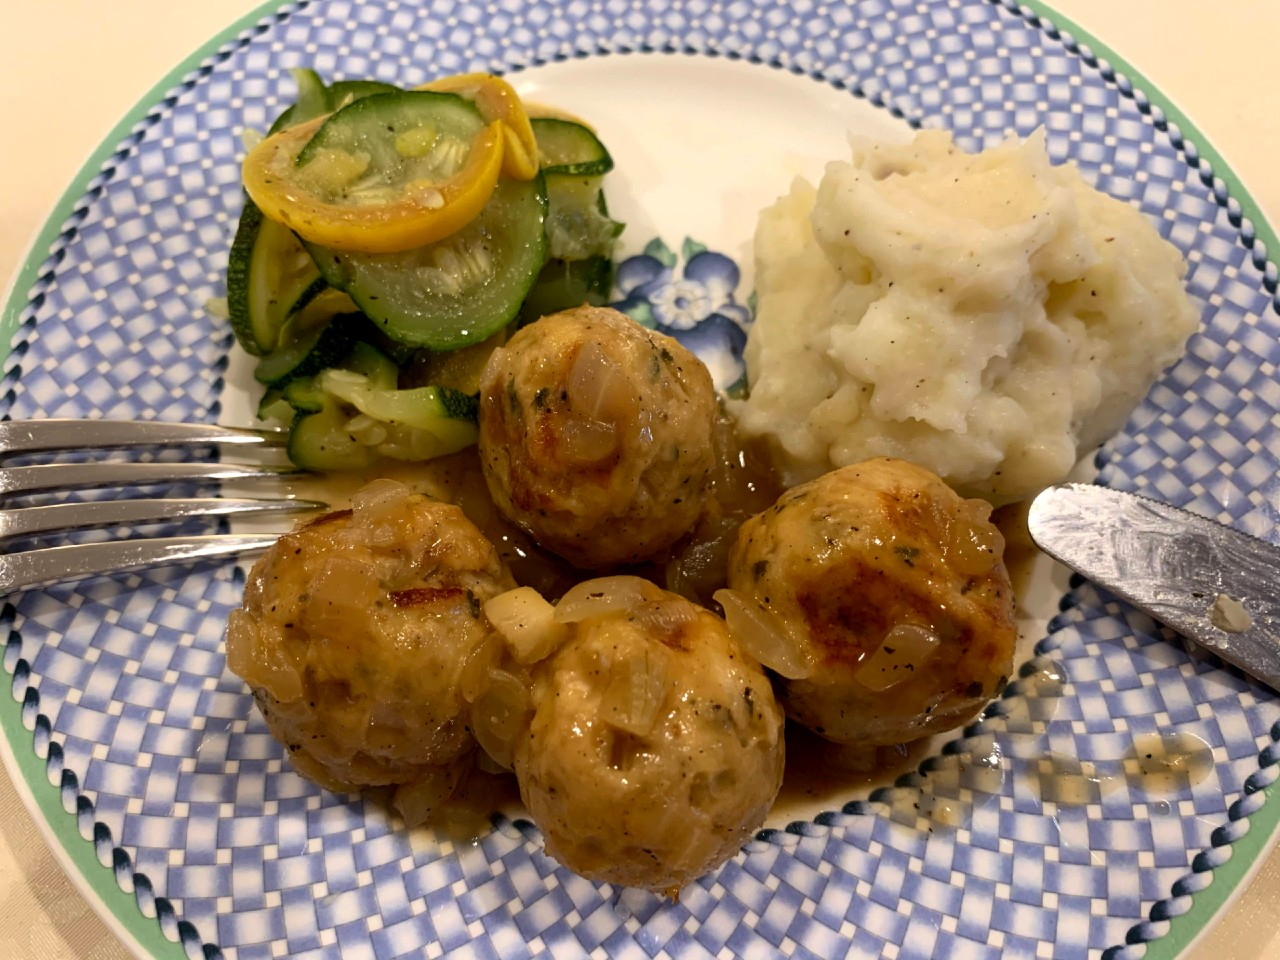 Plate with fork and knife, turkey meatballs, squash, and mashed potatoes